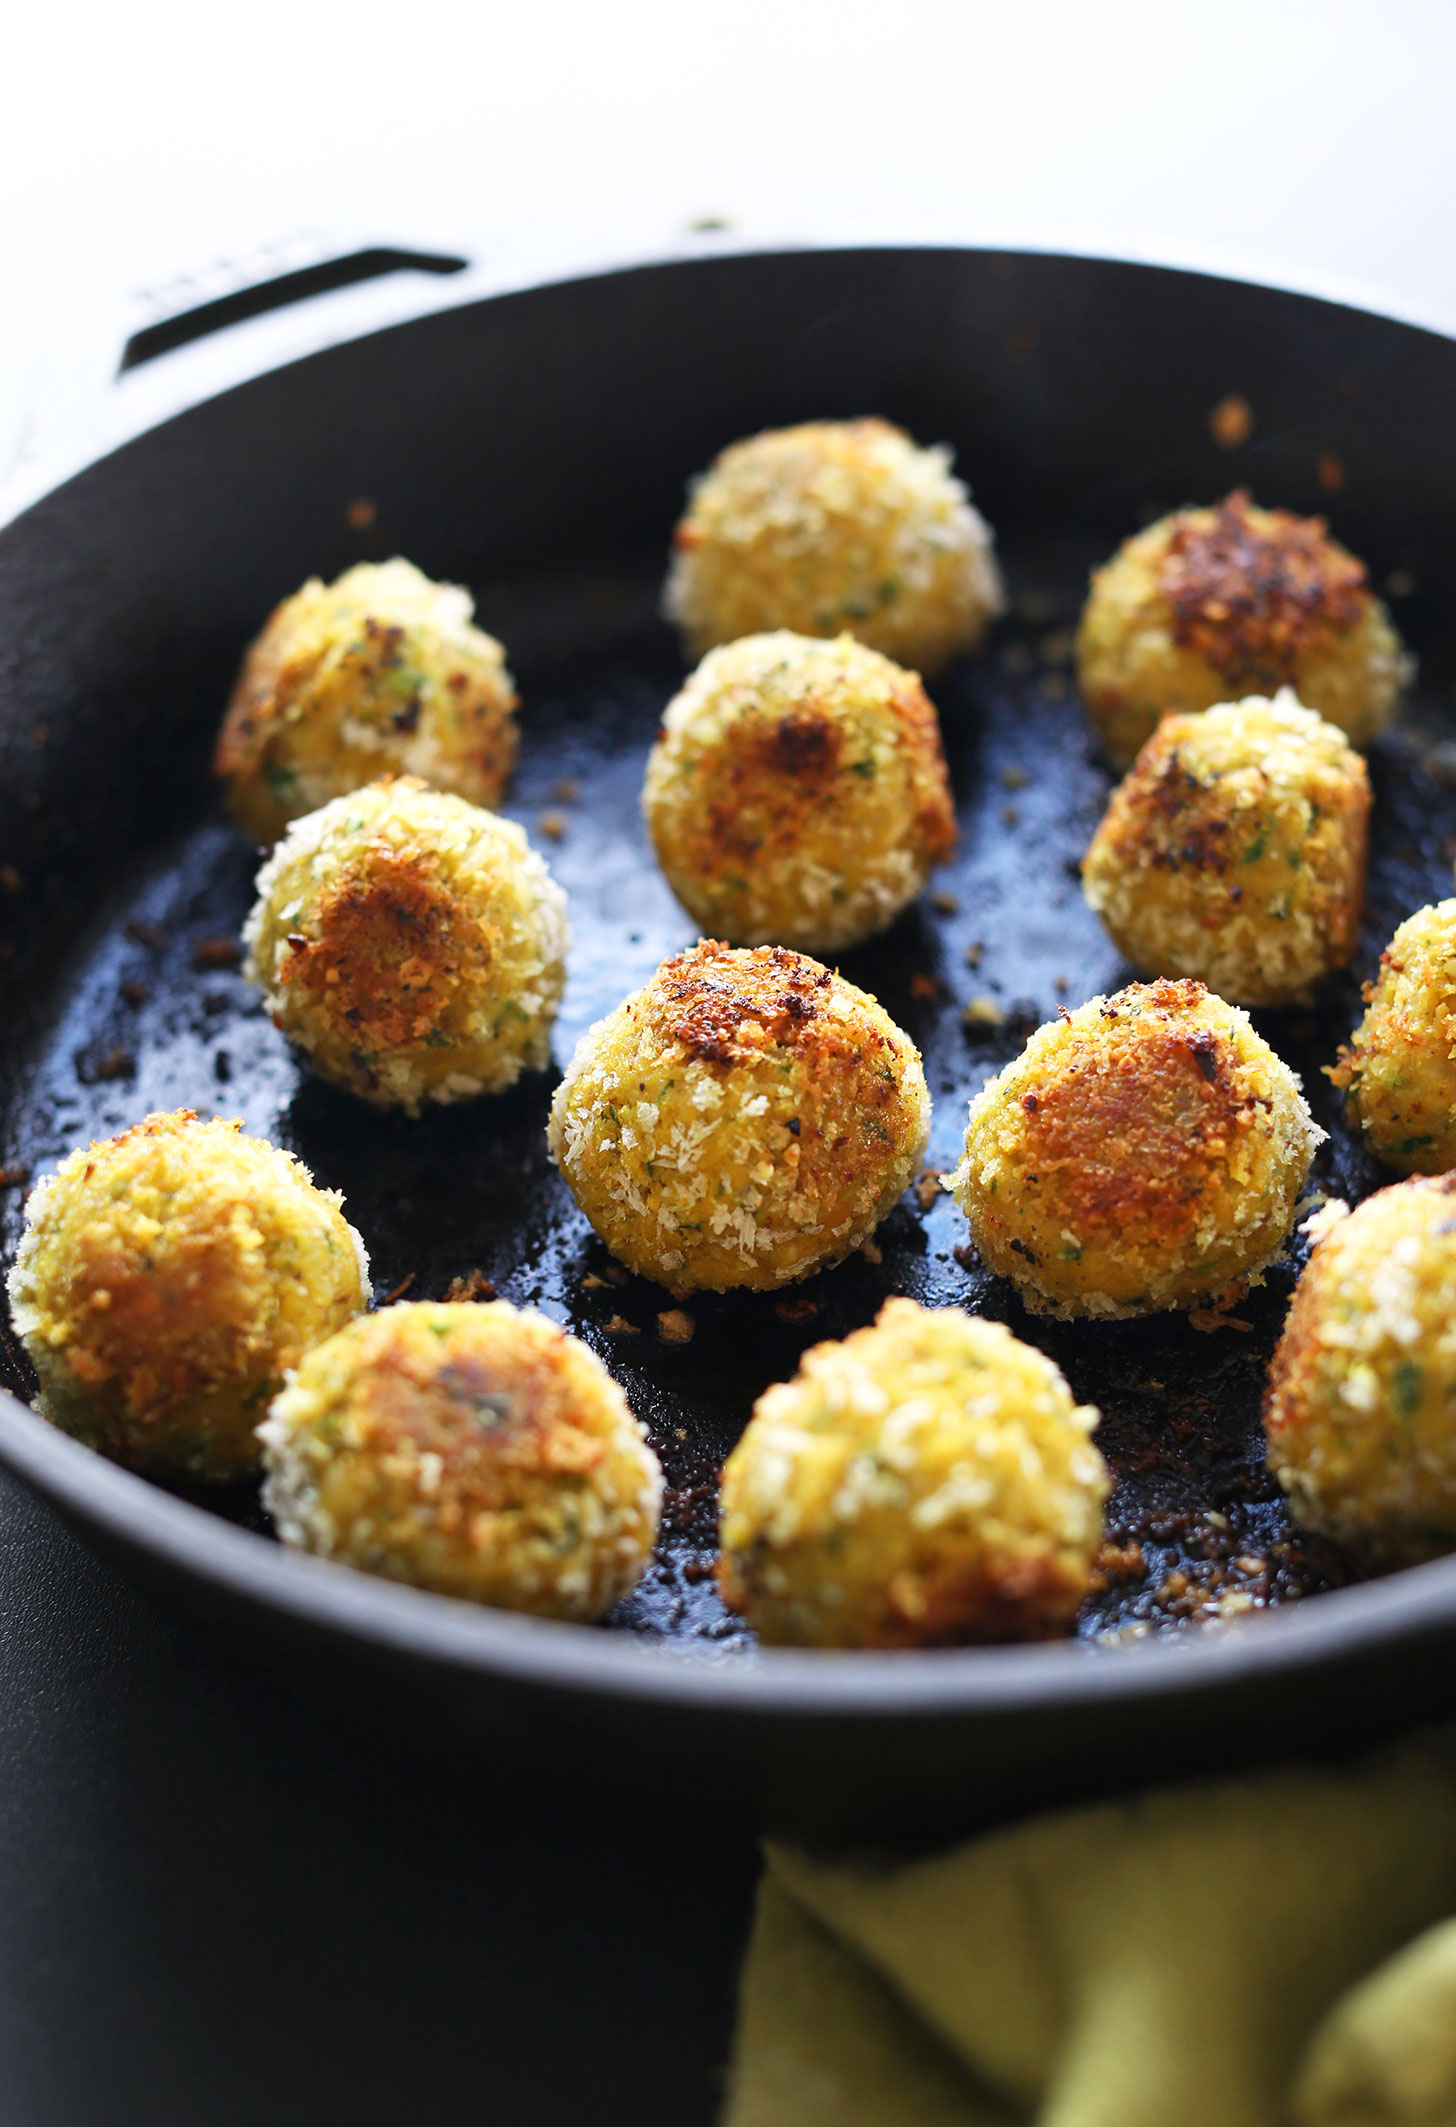 Cast-iron skillet filled with our healthy vegan Turmeric Chickpea Fritters